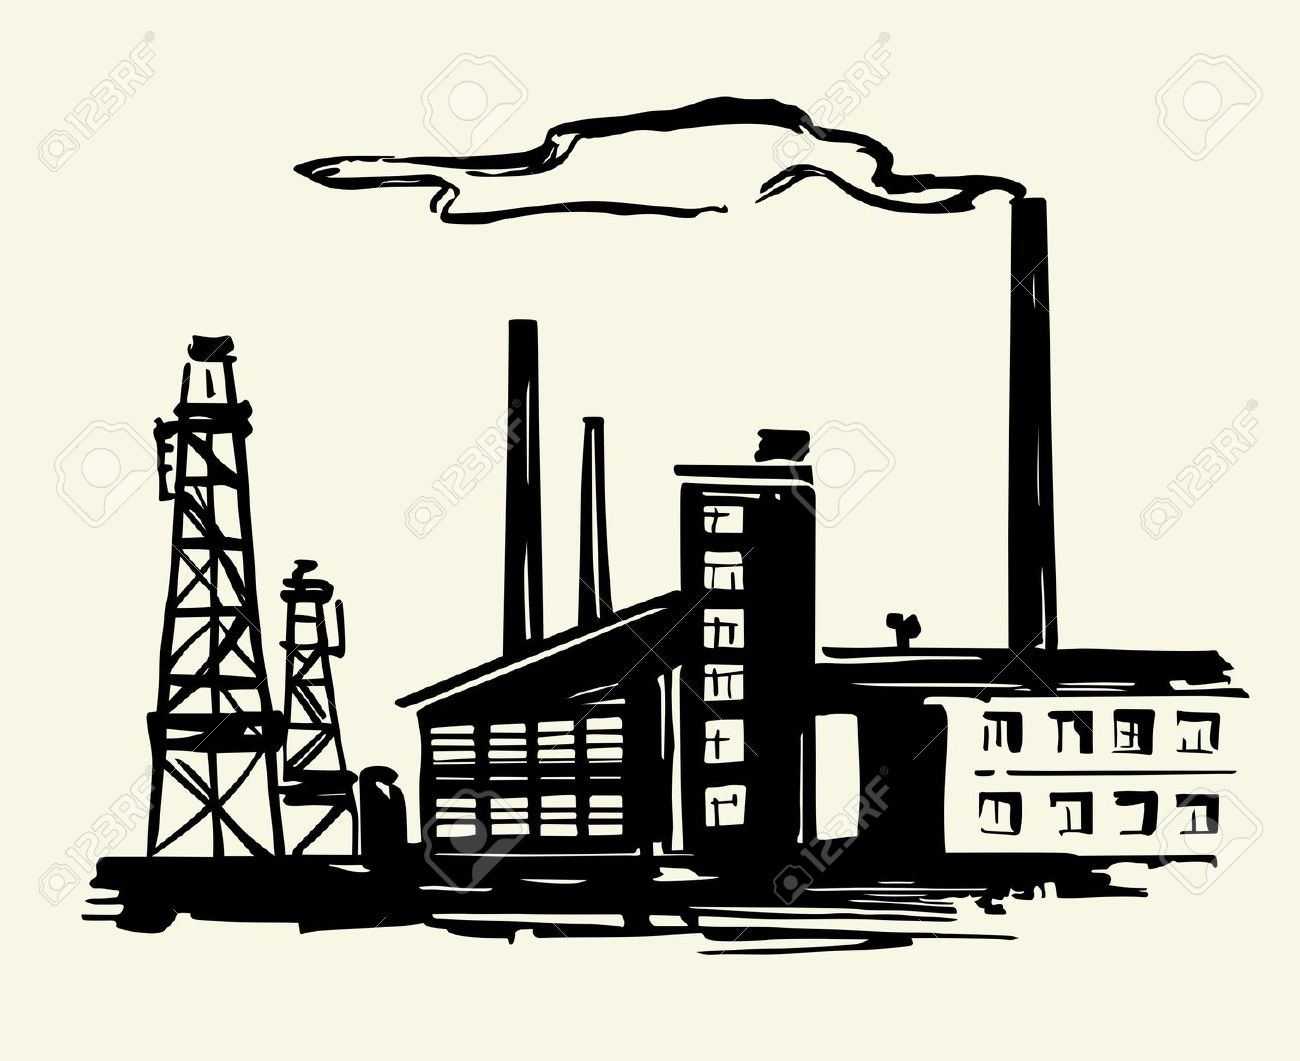 Factories Clip Art